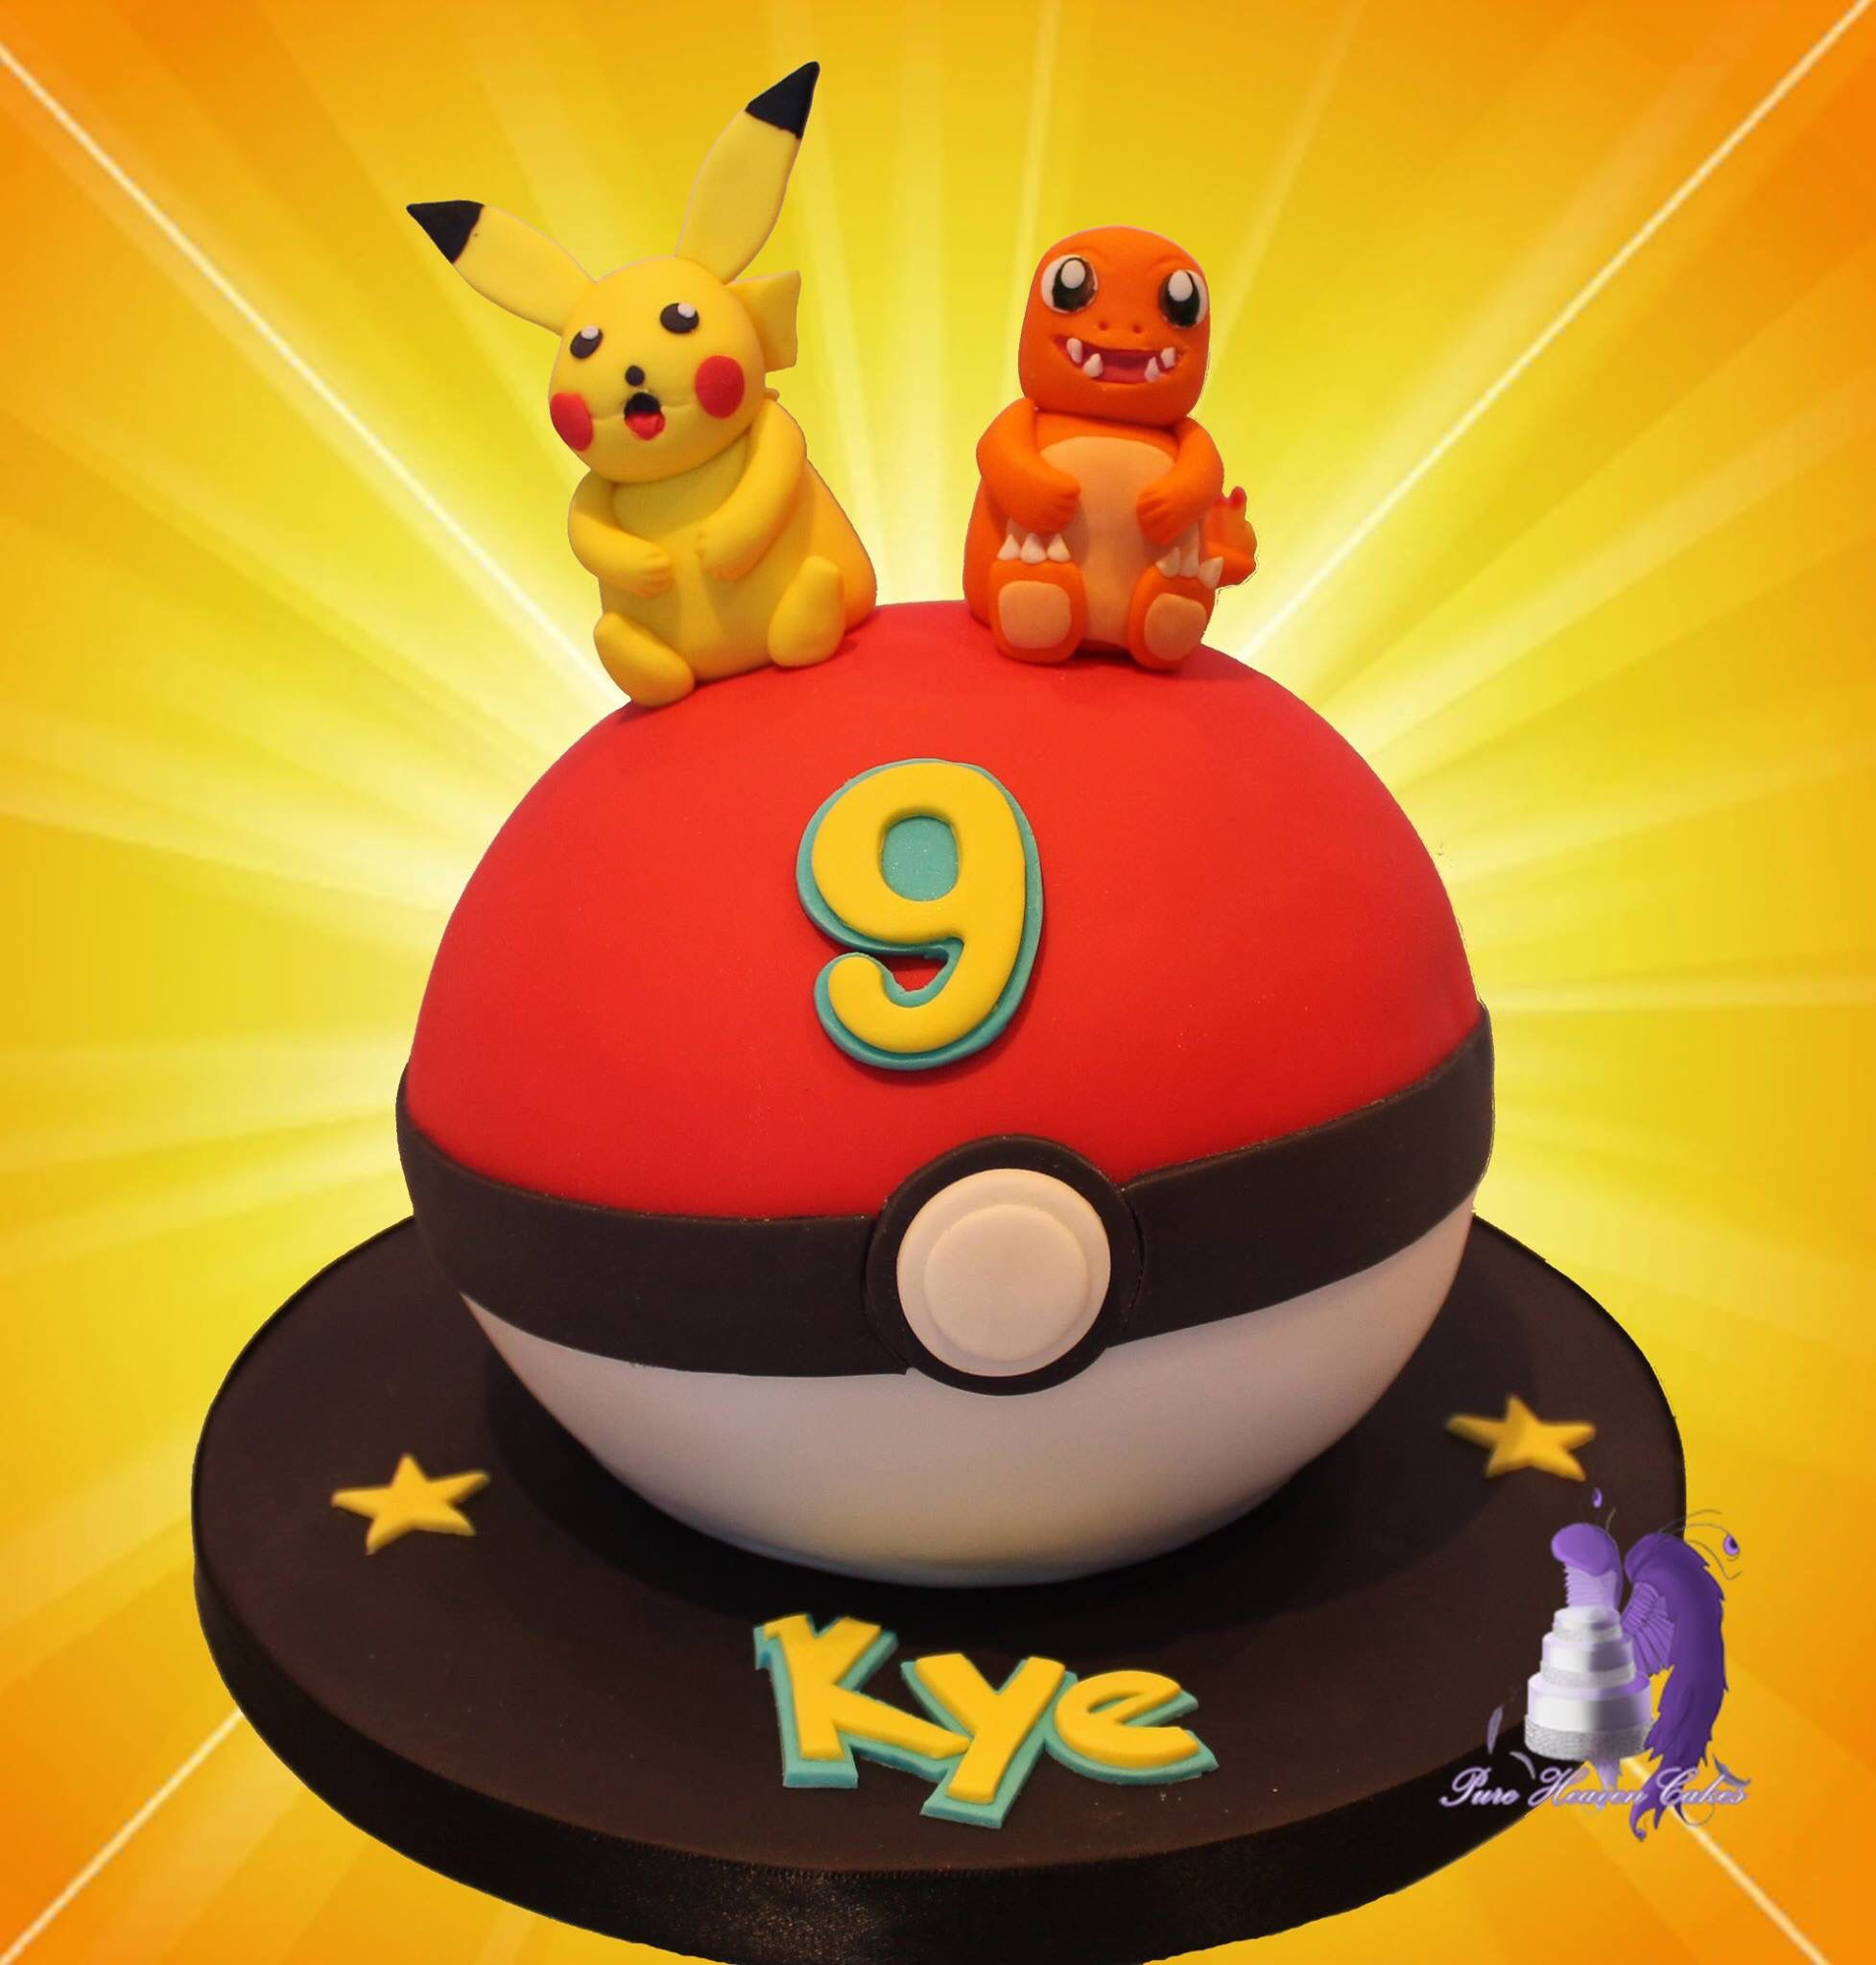 Marvelous Pokemon Cake Featuring Pikachu And Charmander With Images Funny Birthday Cards Online Elaedamsfinfo